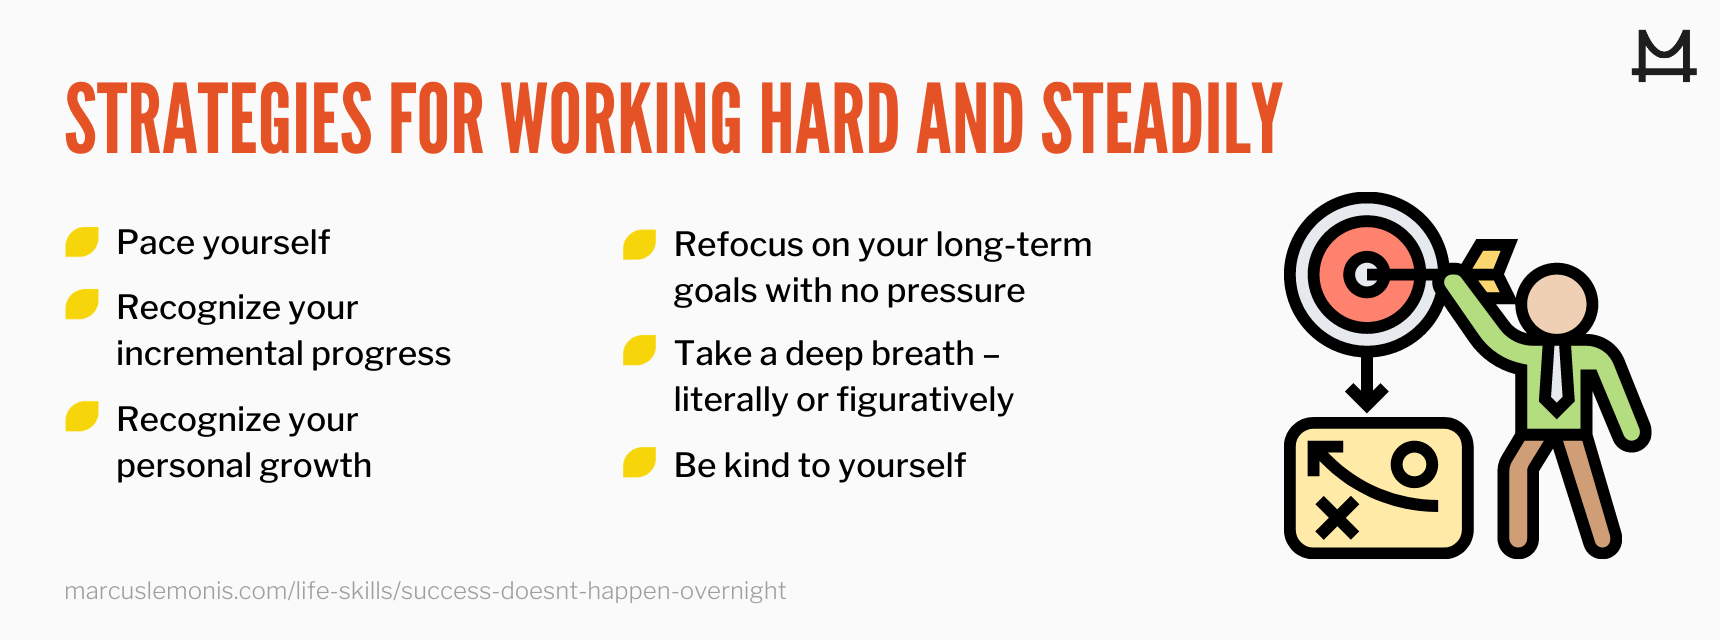 graphic outlining strategies for hard and steady work for success